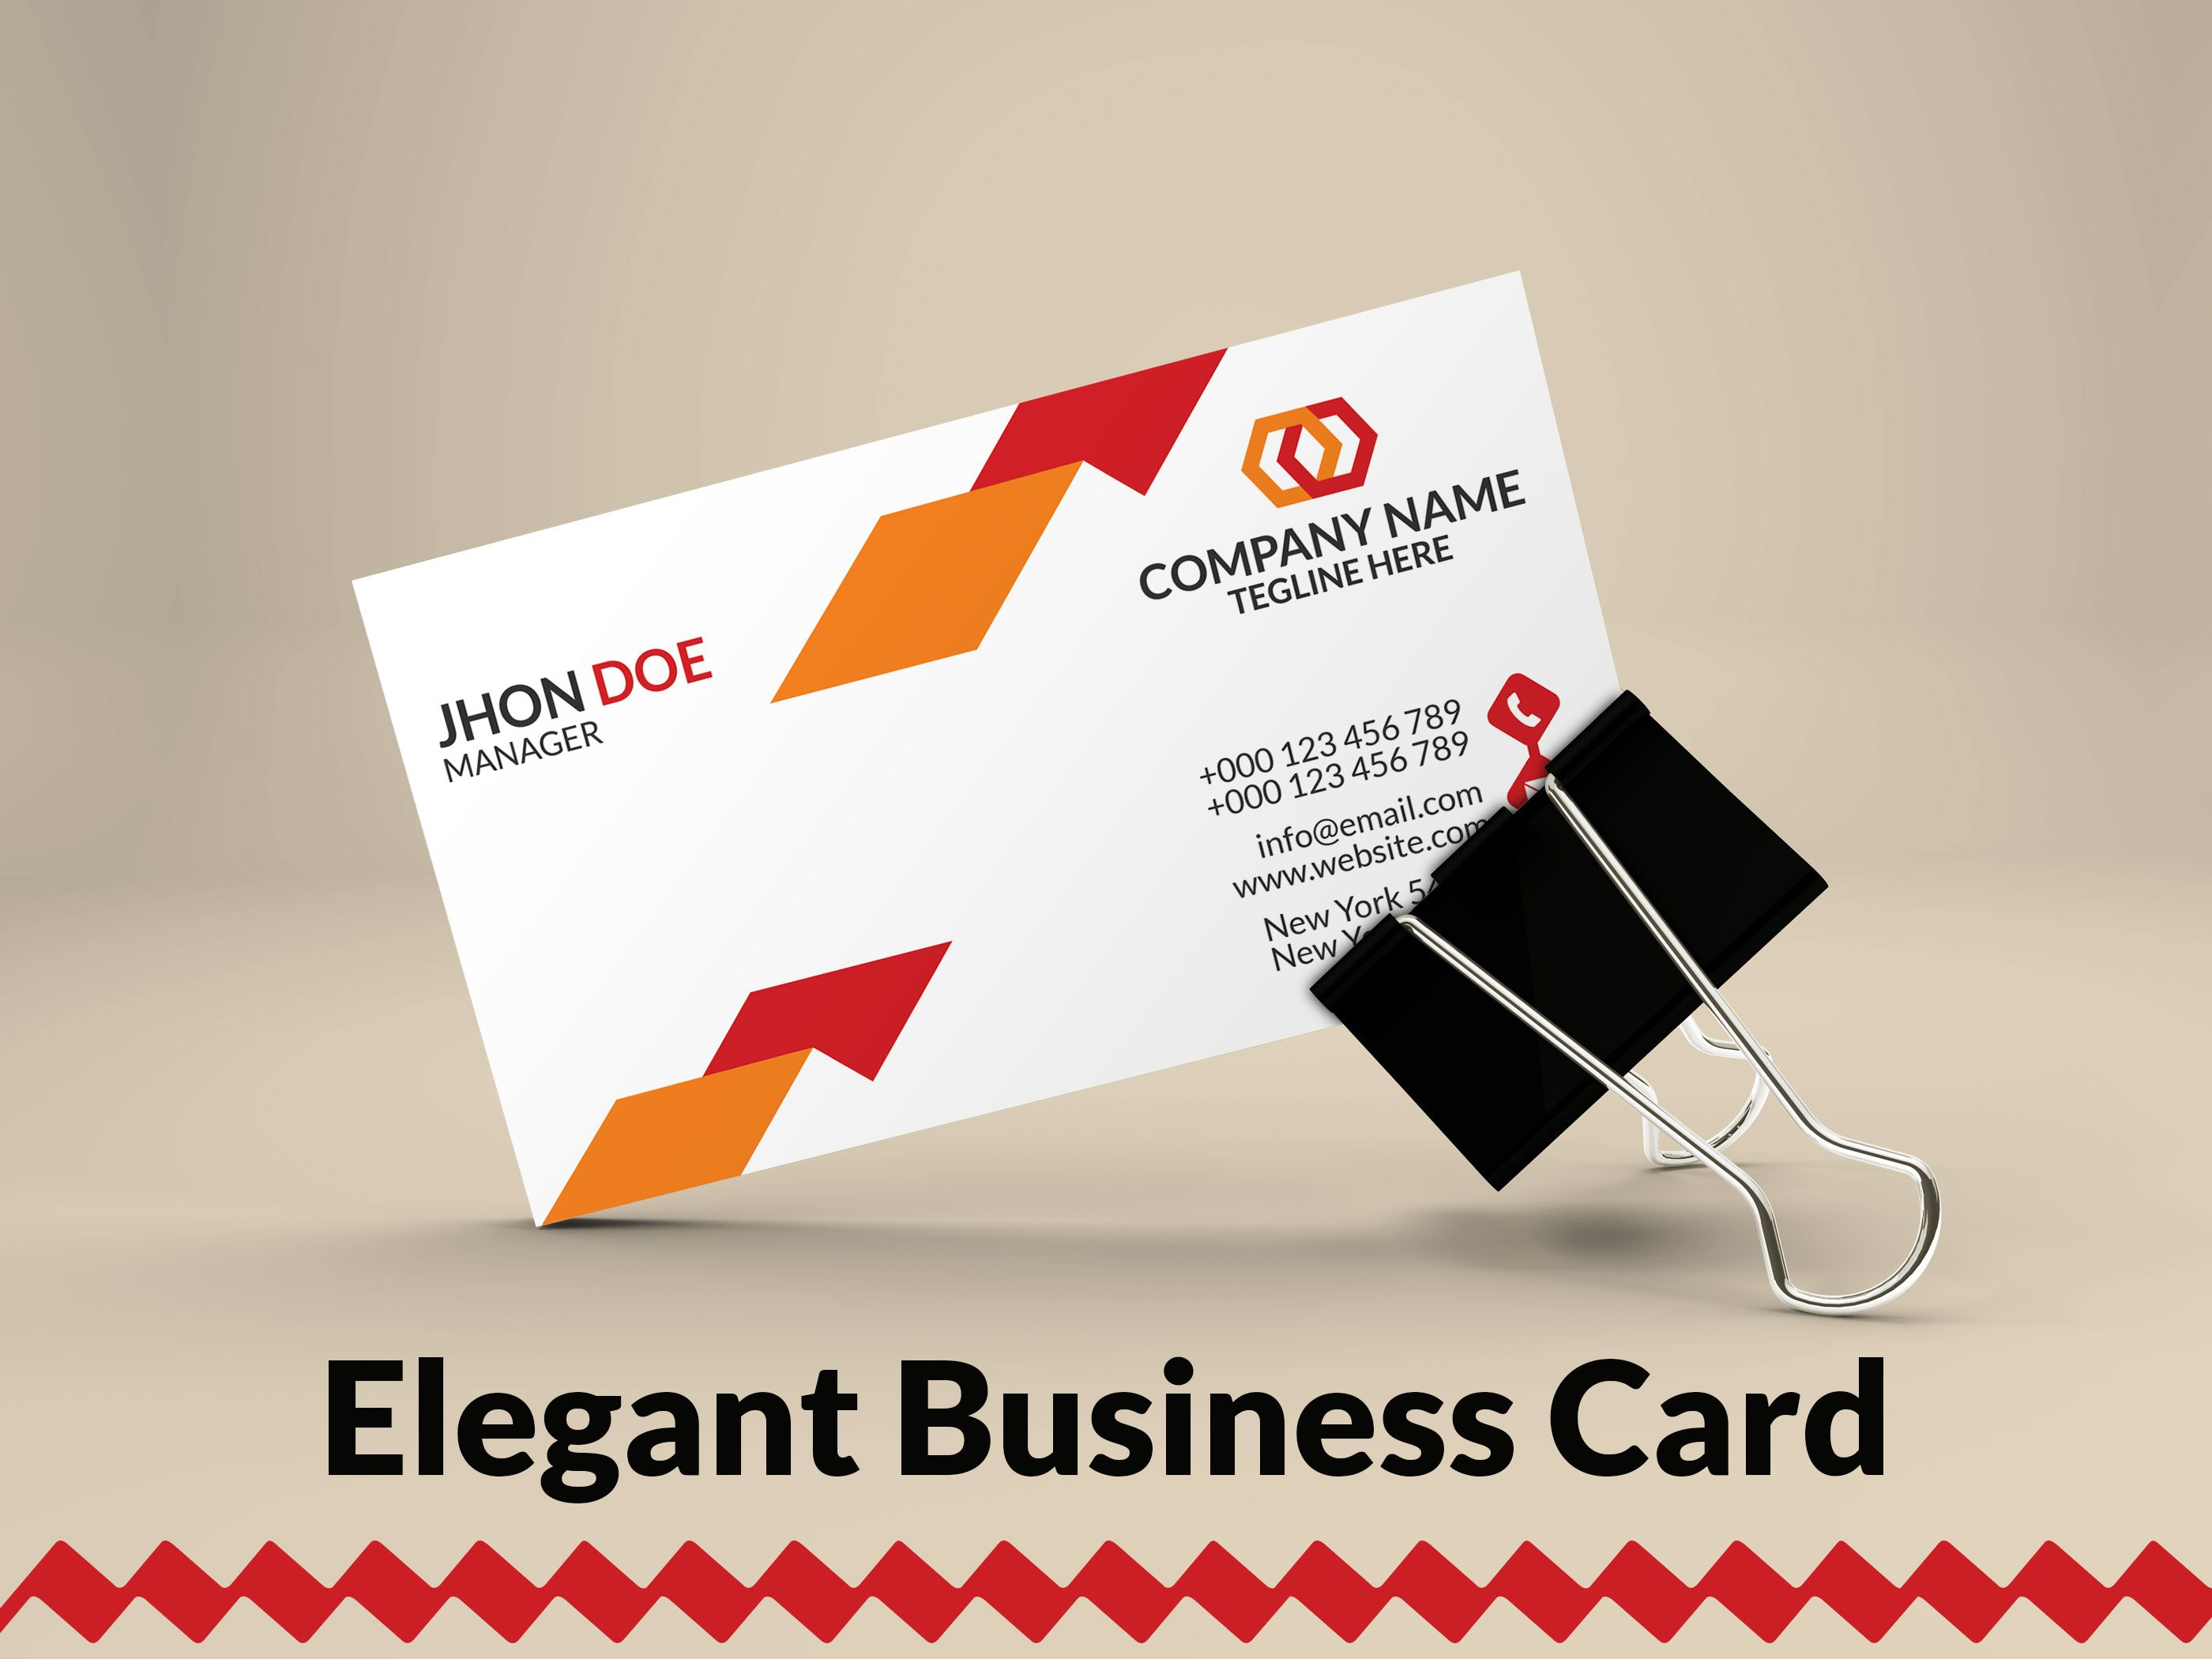 40 Creative Examples Of Transparent Business Cards Transparent Business Cards Plastic Business Cards Design Plastic Business Cards